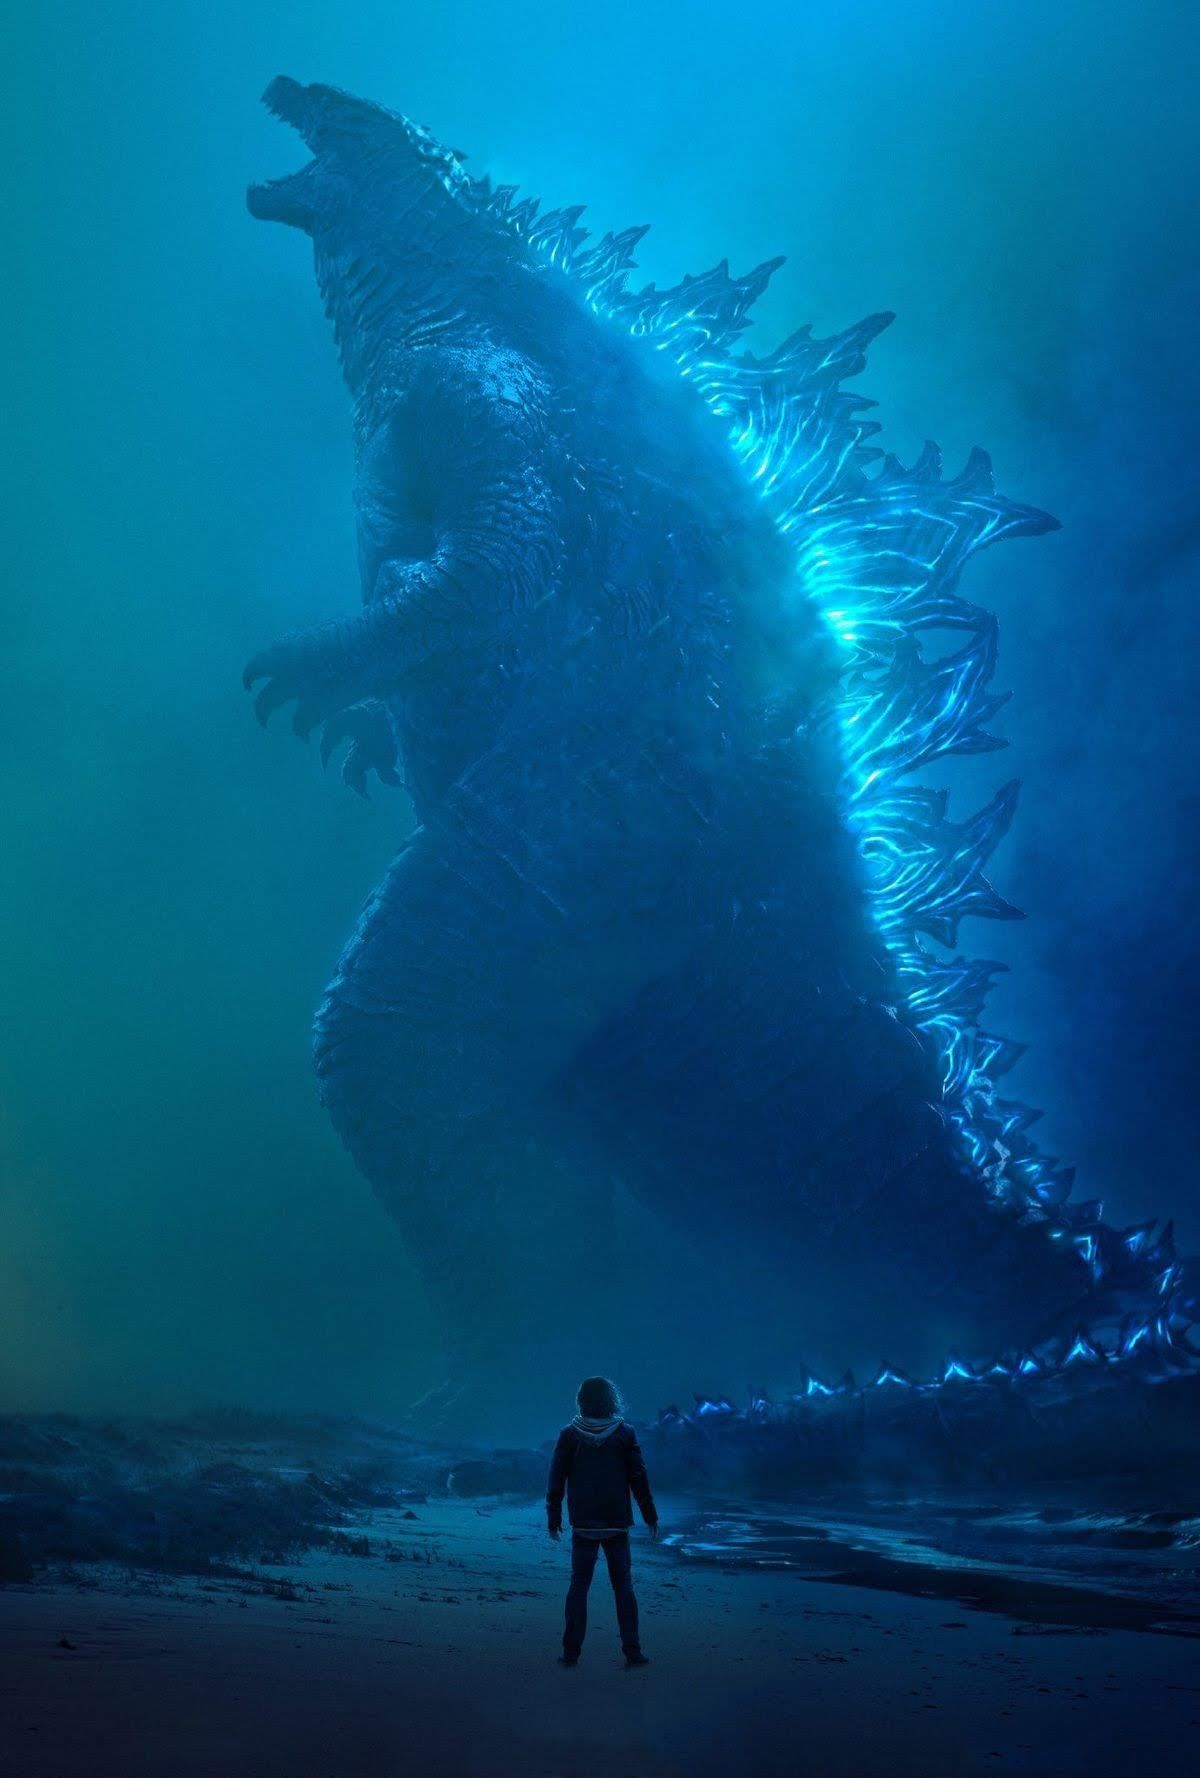 Godzilla King Of The Monsters Textless Posters ハリウッド版